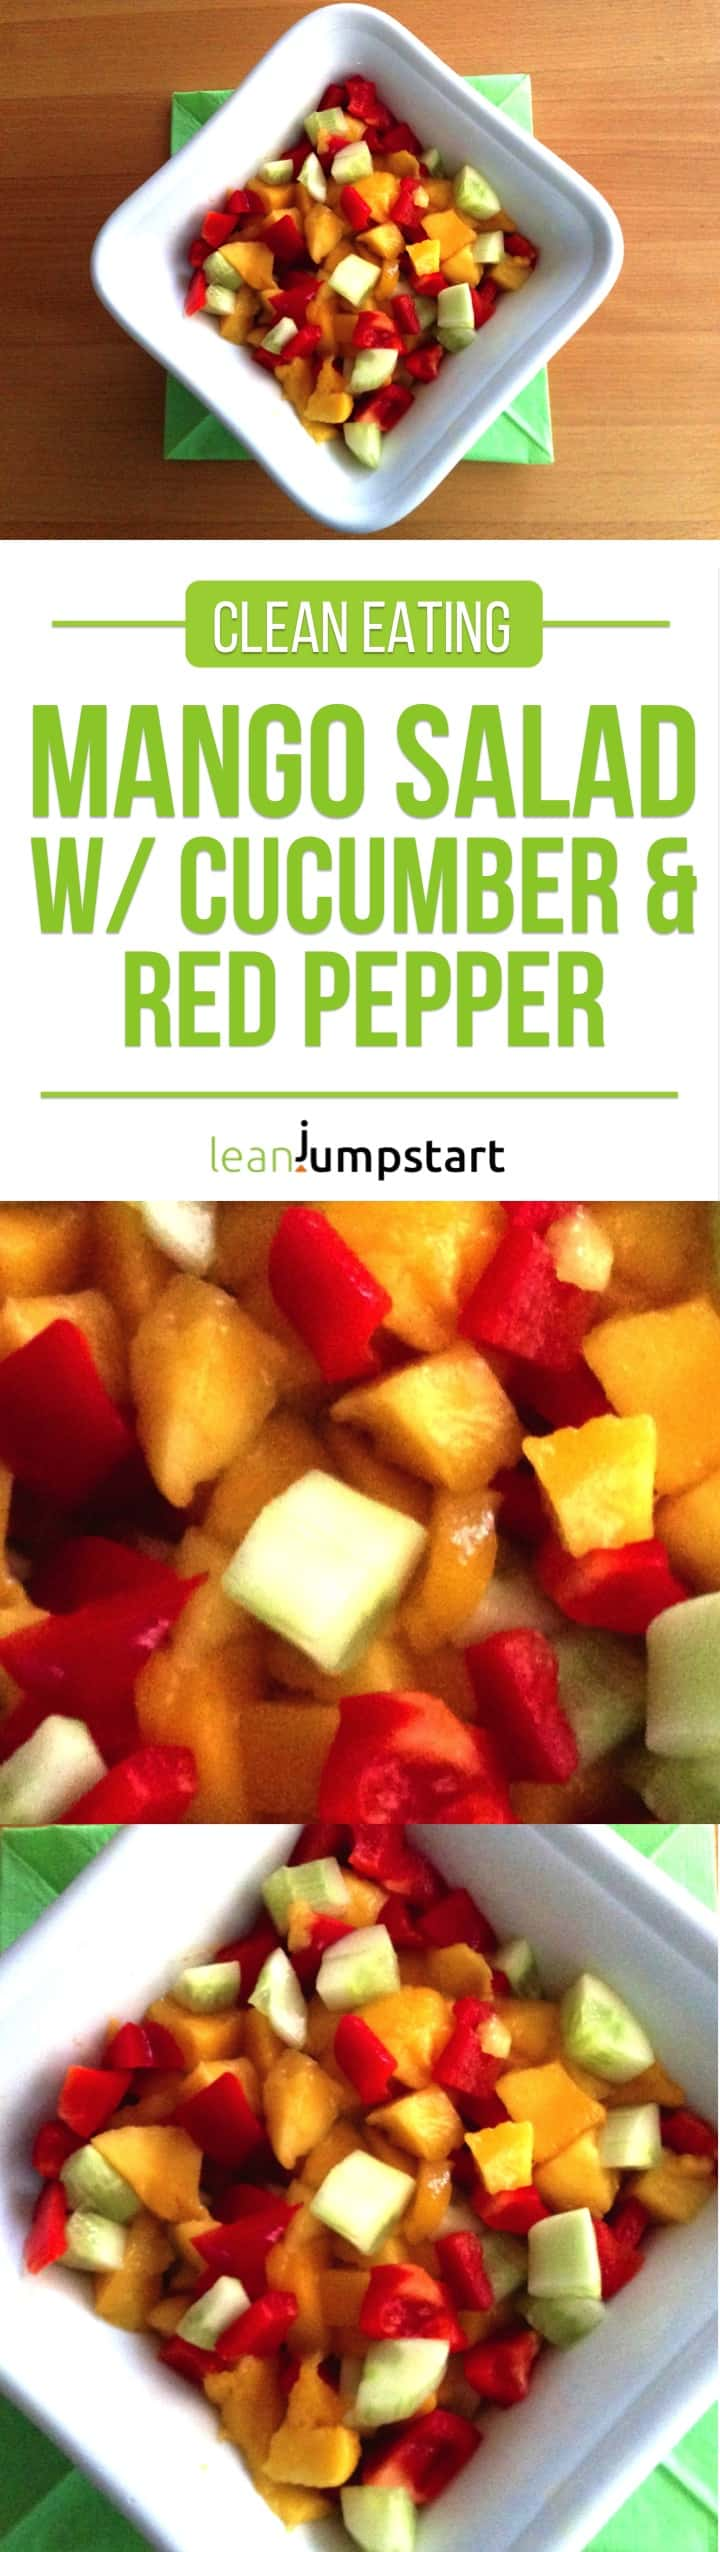 mango salad with cucumber and red pepper - grab this lean and simple clean eating salad recipe